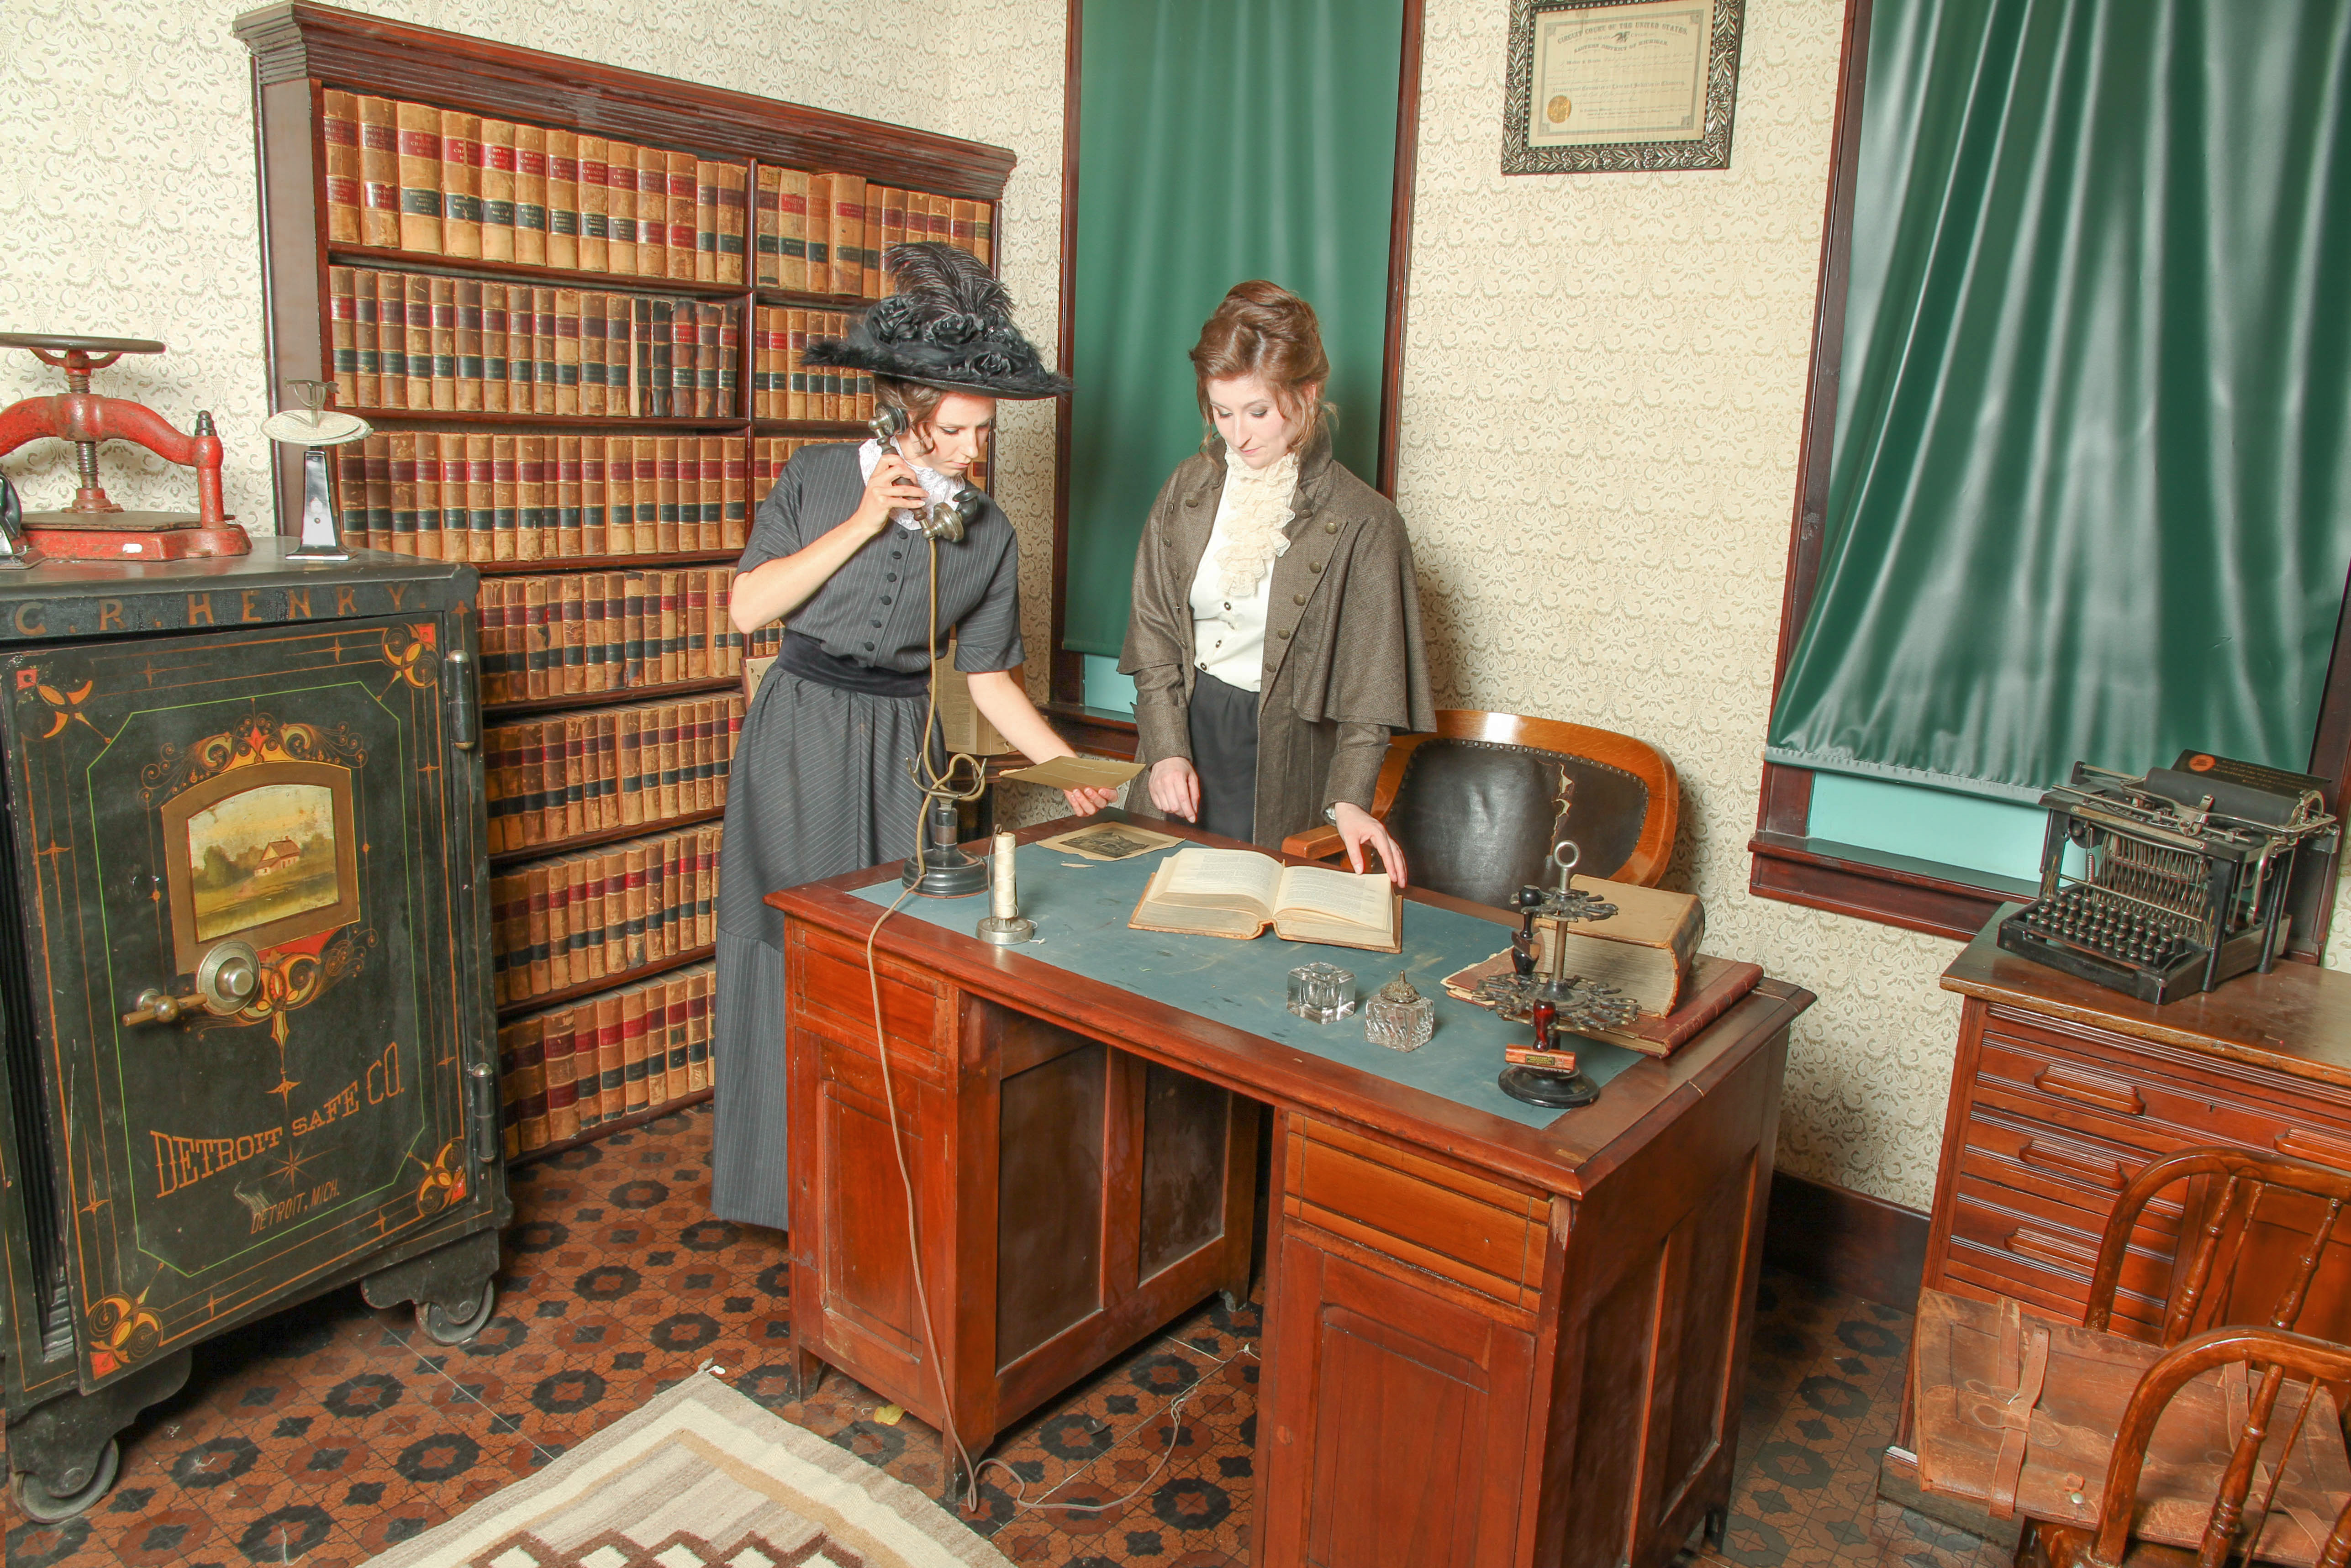 models in Edwardian clothing making a call from the lawyer's desk